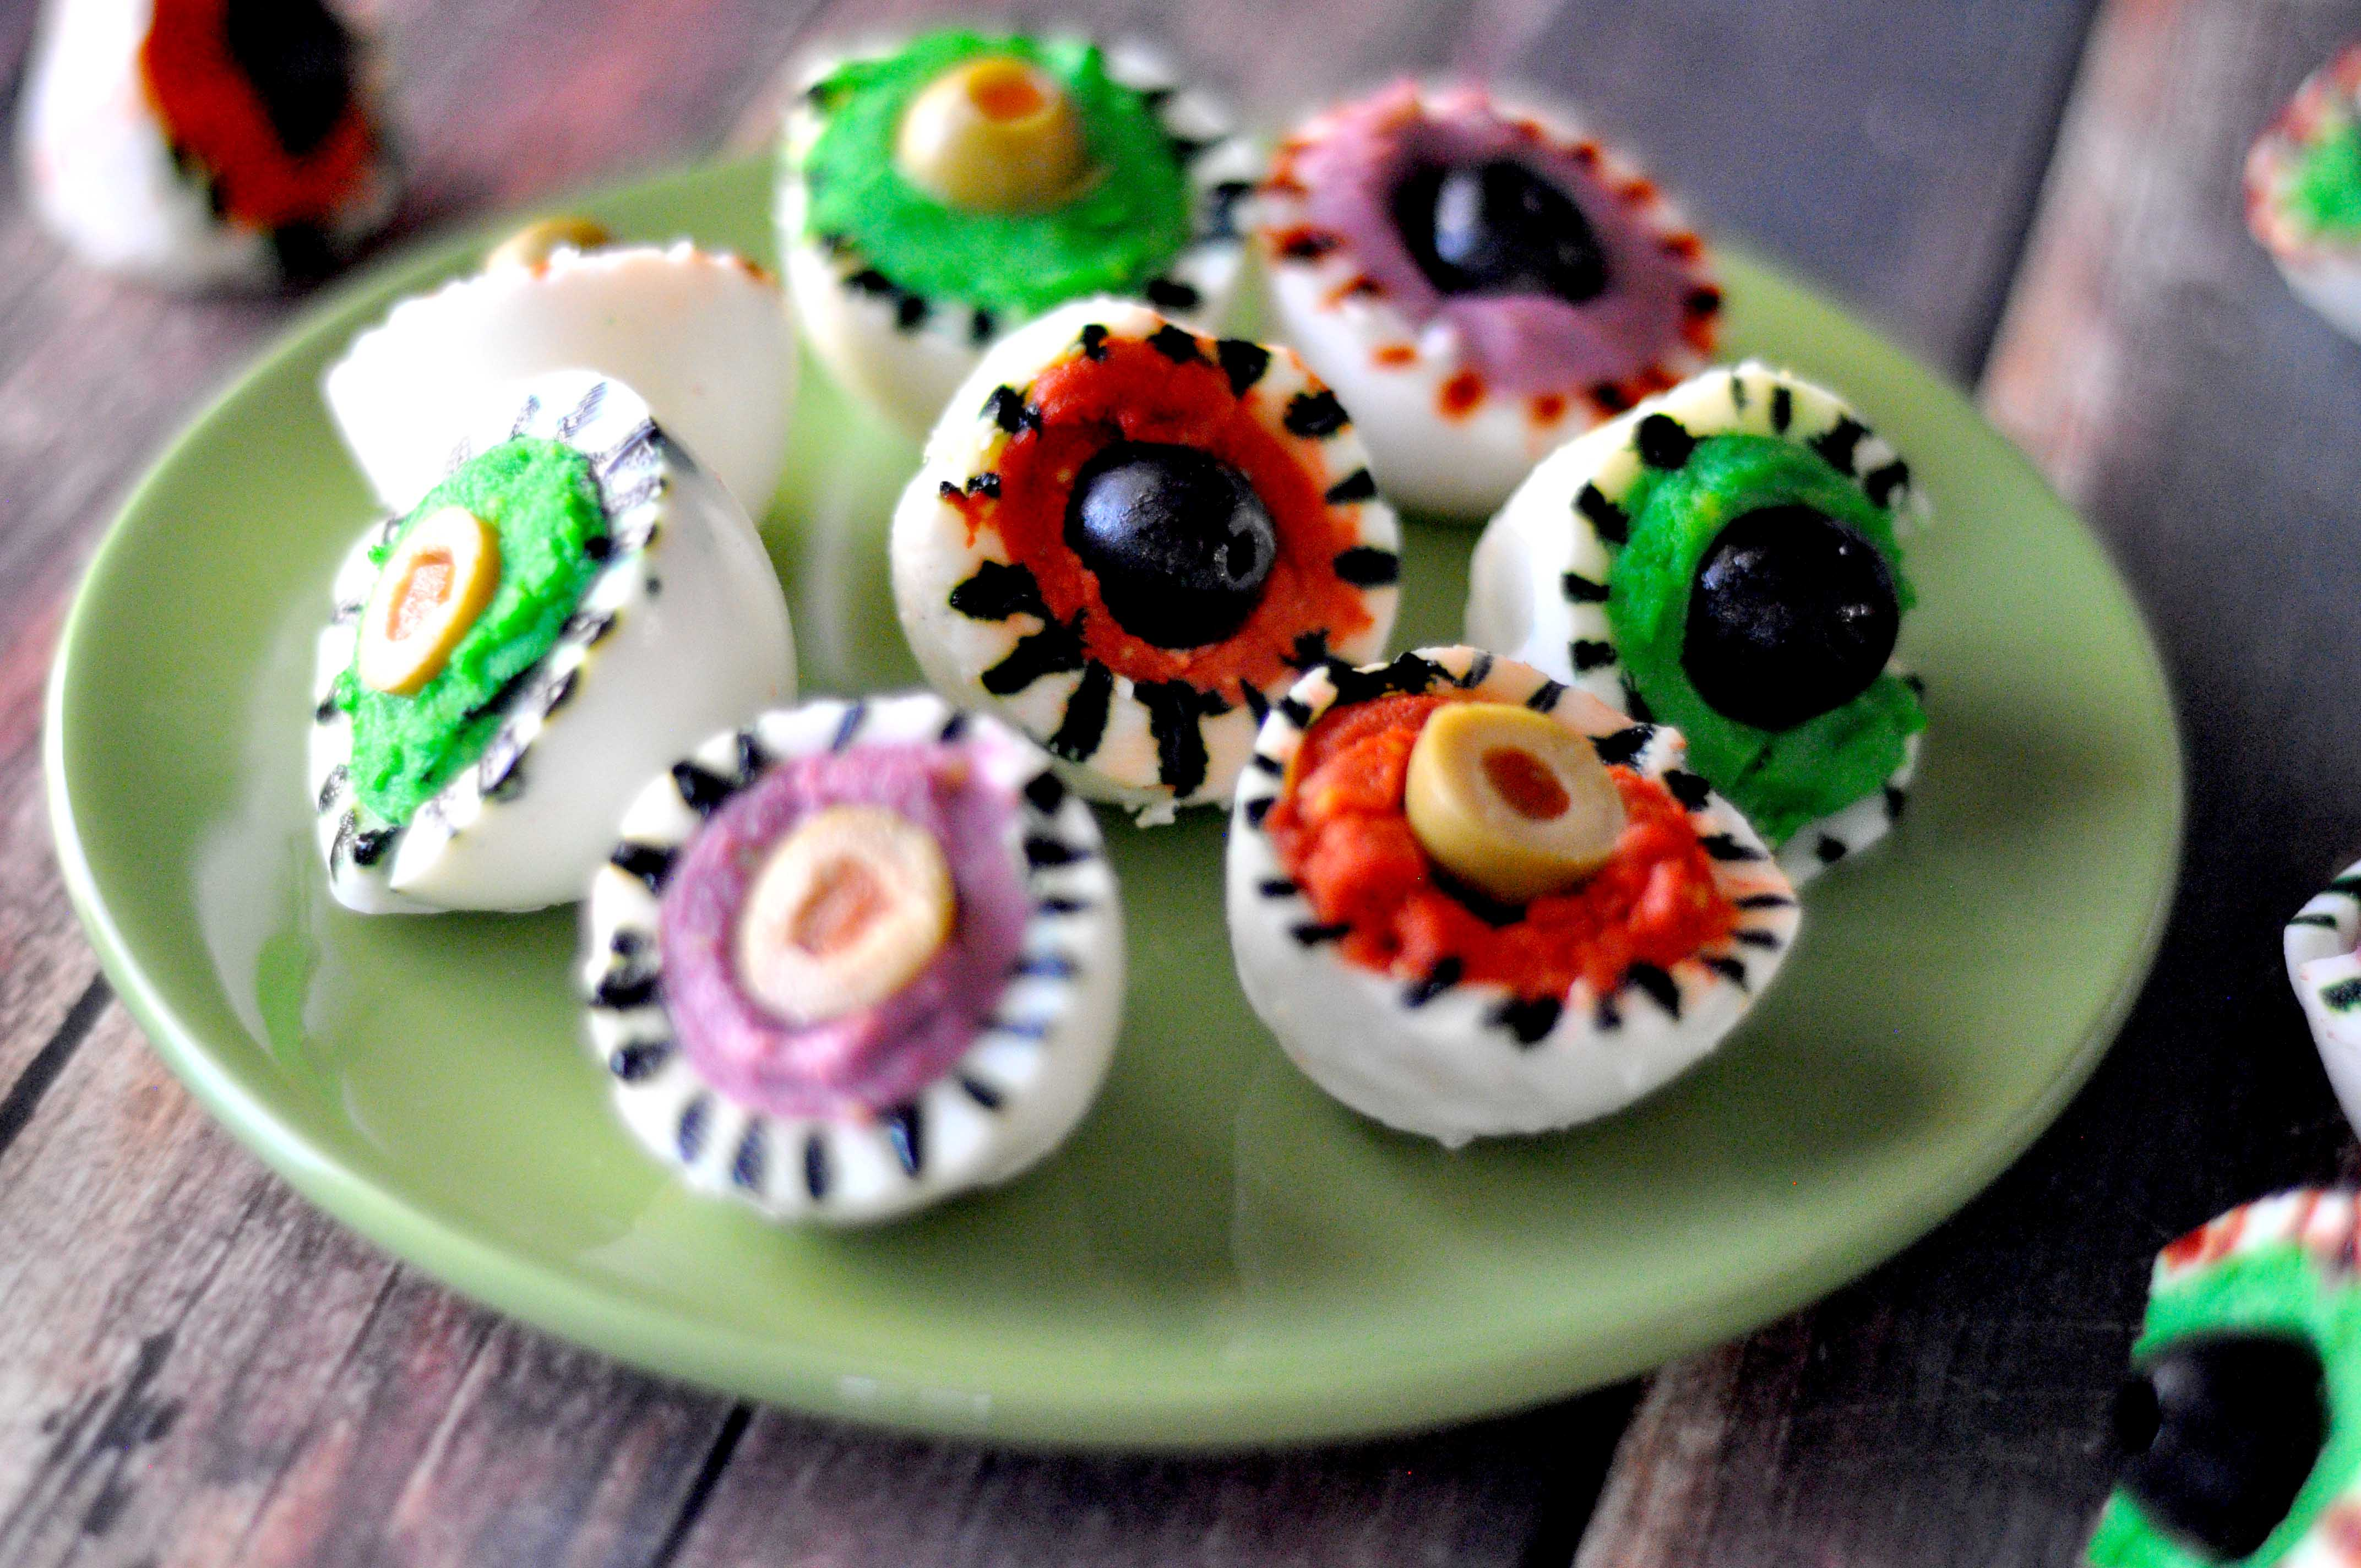 Halloween Deviled Eggs | Monster Eyeballs | A fun and easy Halloween snack or appetizer! www.TeepeeGirl.com